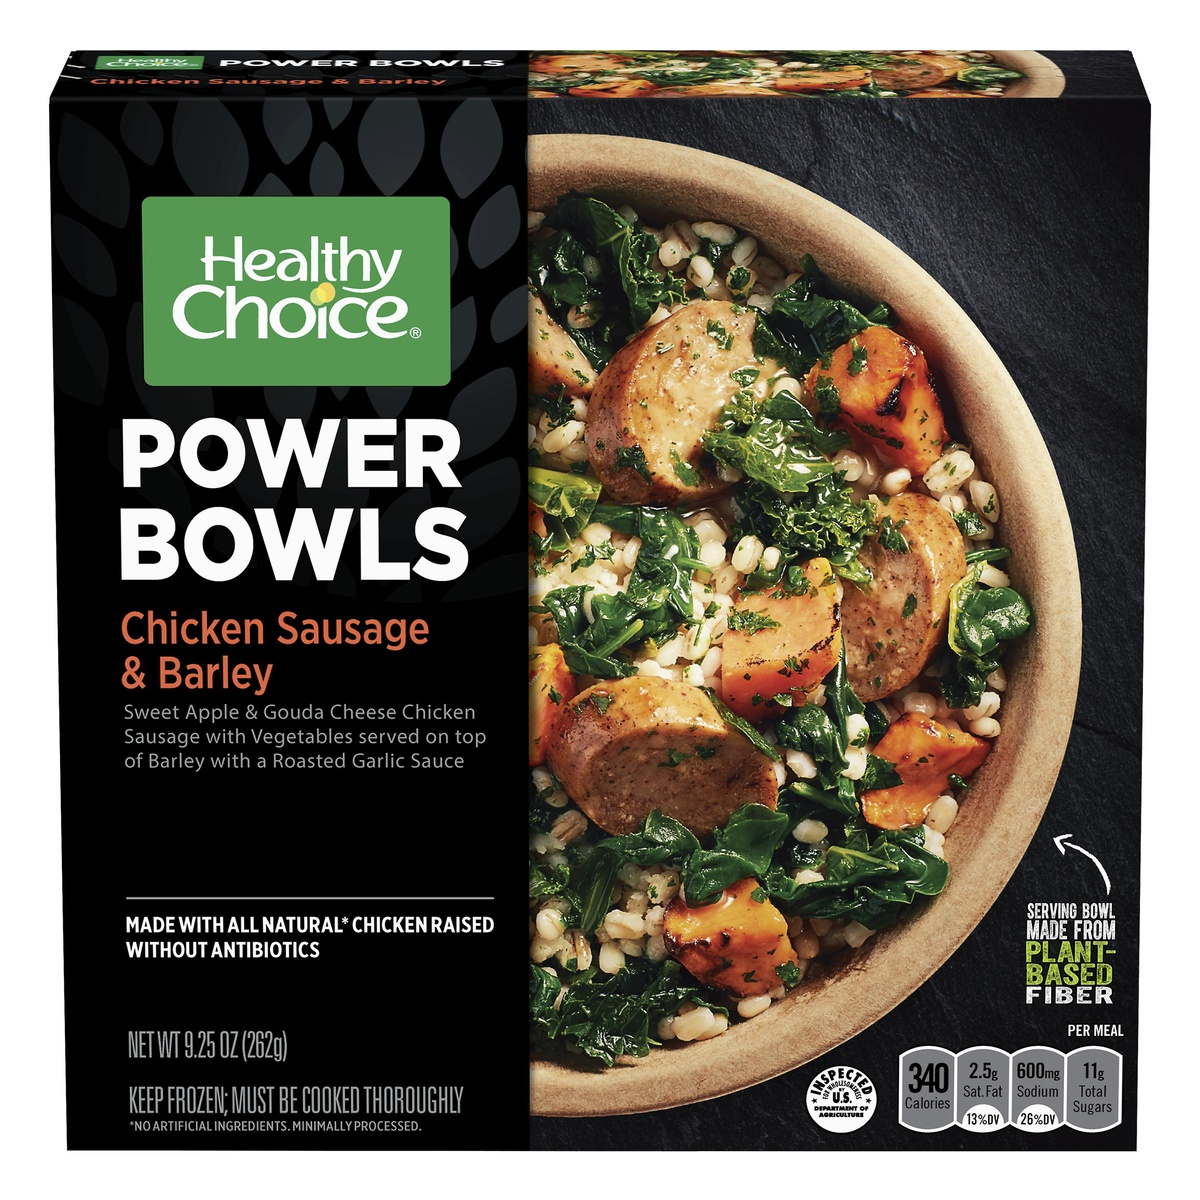 slide 1 of 8, Healthy Choice Powerbowl Chicken Sausage Barley,